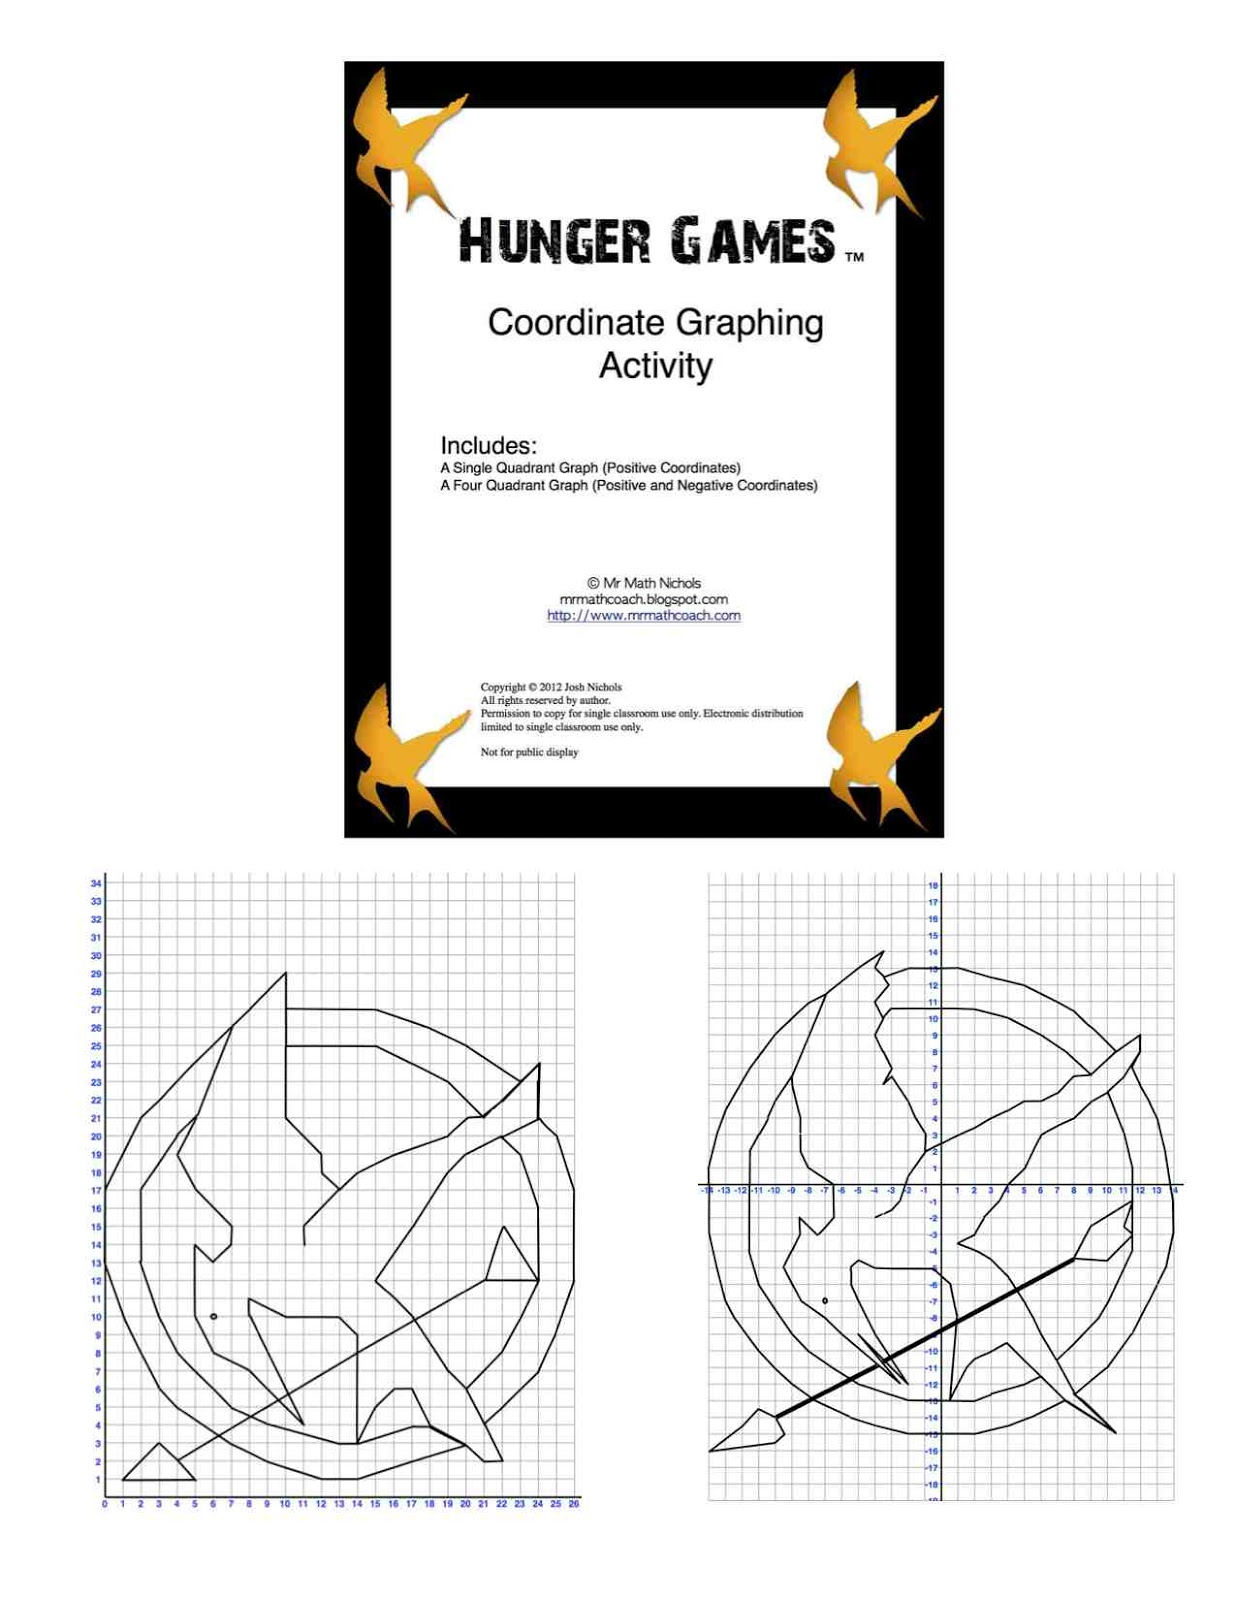 worksheet Coordinate Graphing Activity hunger games coordinate graph one quadrant and four quadrant